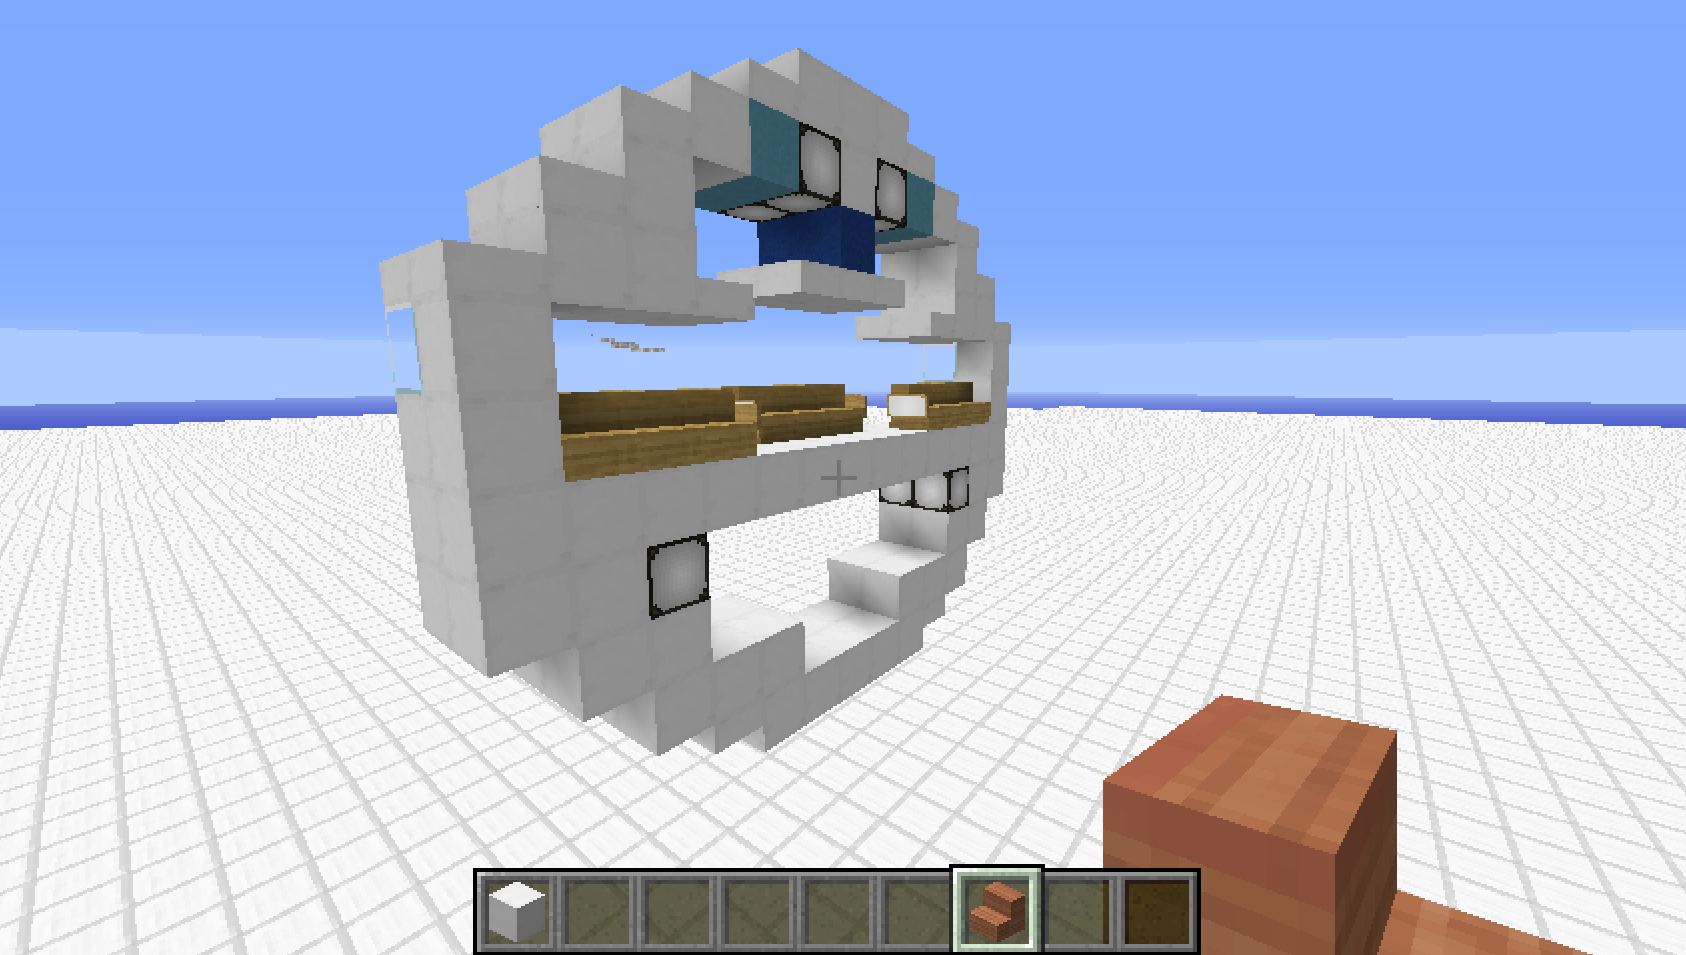 How To Build A Plane Demo 7e7 Minecraft Blog